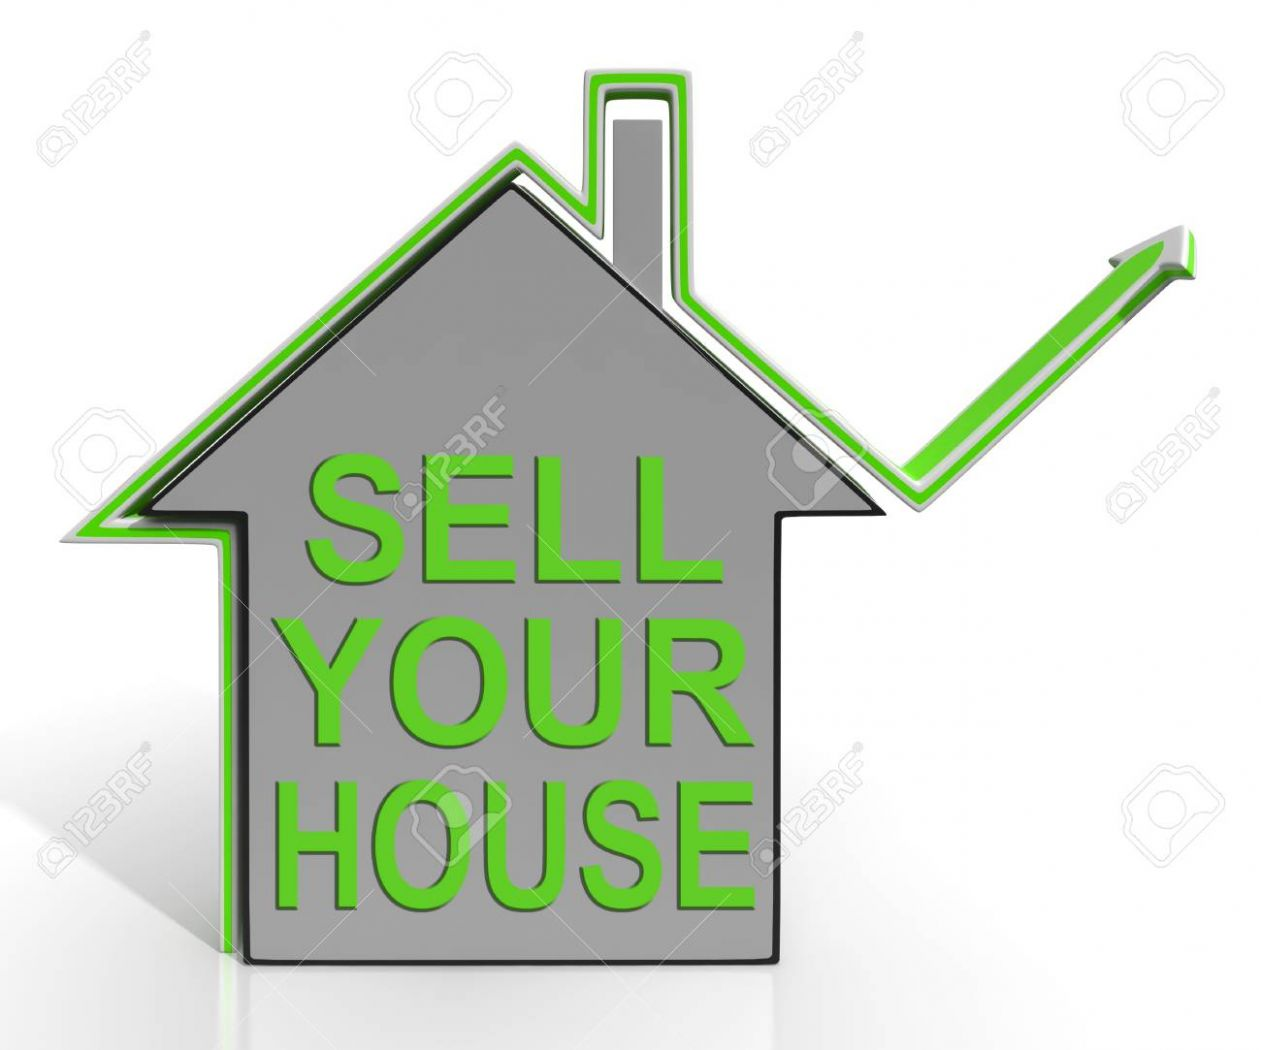 Sell Your House Home Meaning Find Property Buyers